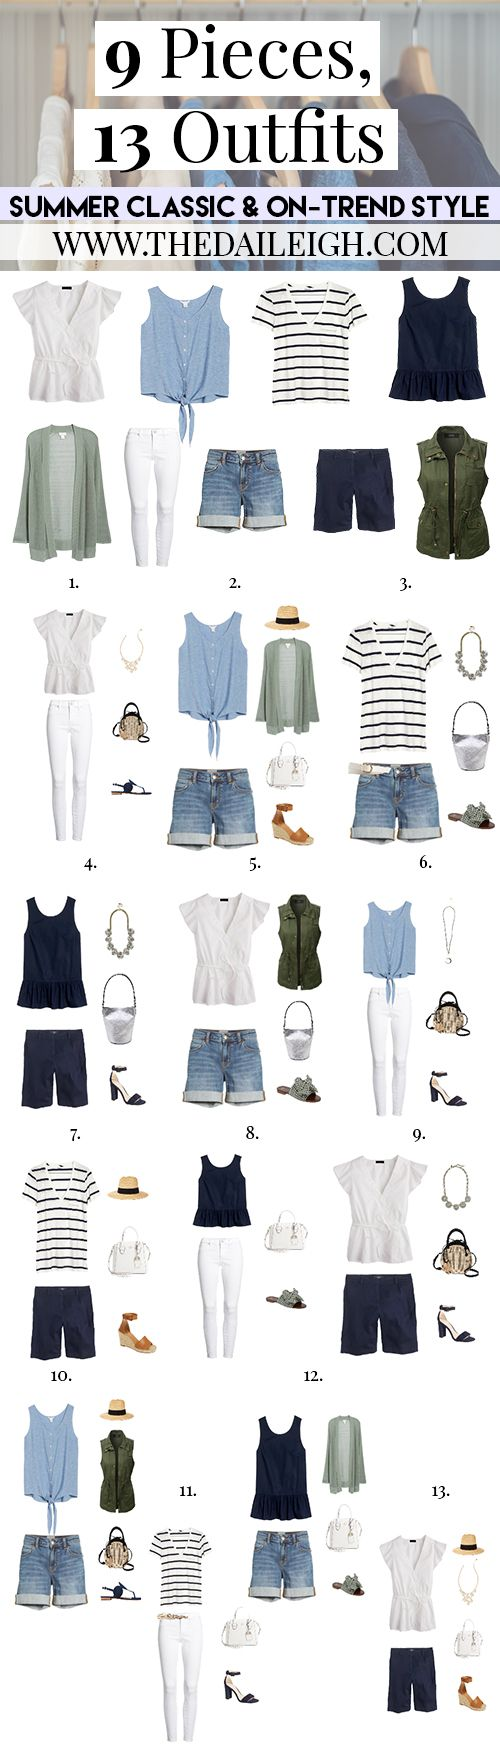 9 Pieces, 13 Outfits - Classic And On-Trend Style